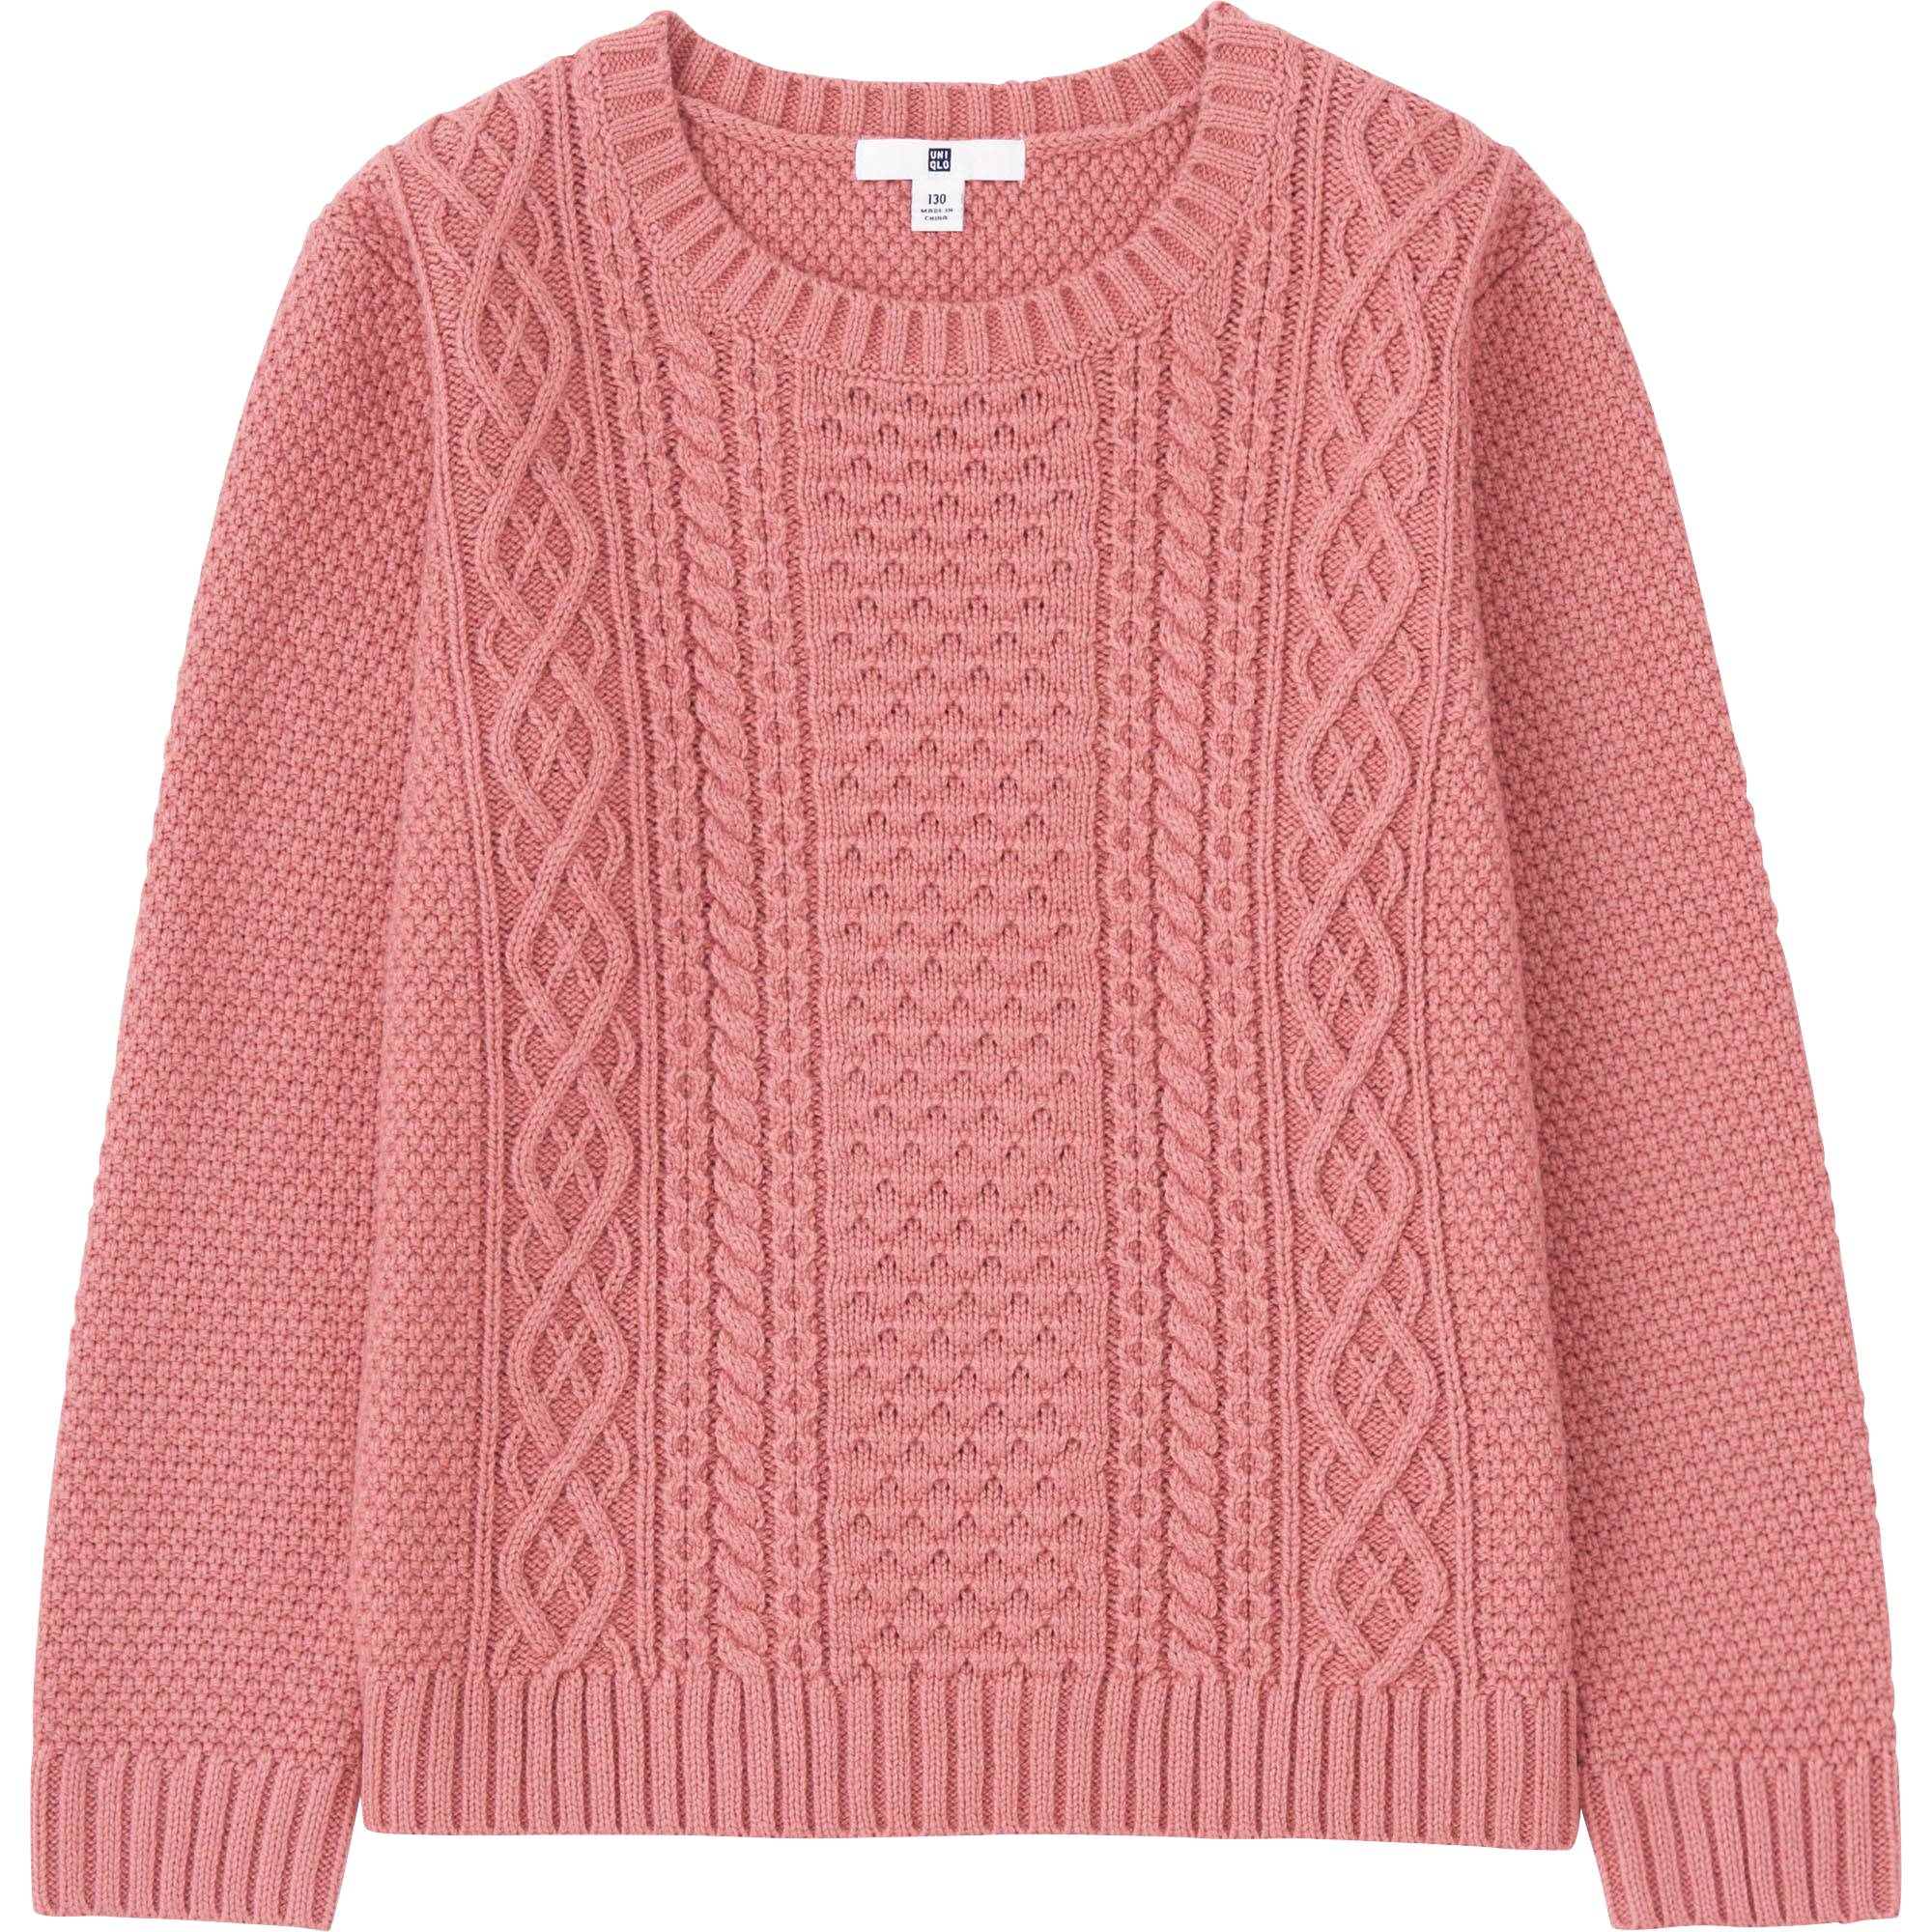 KIDS CREWNECK LONG SLEEVE SWEATER | UNIQLO US